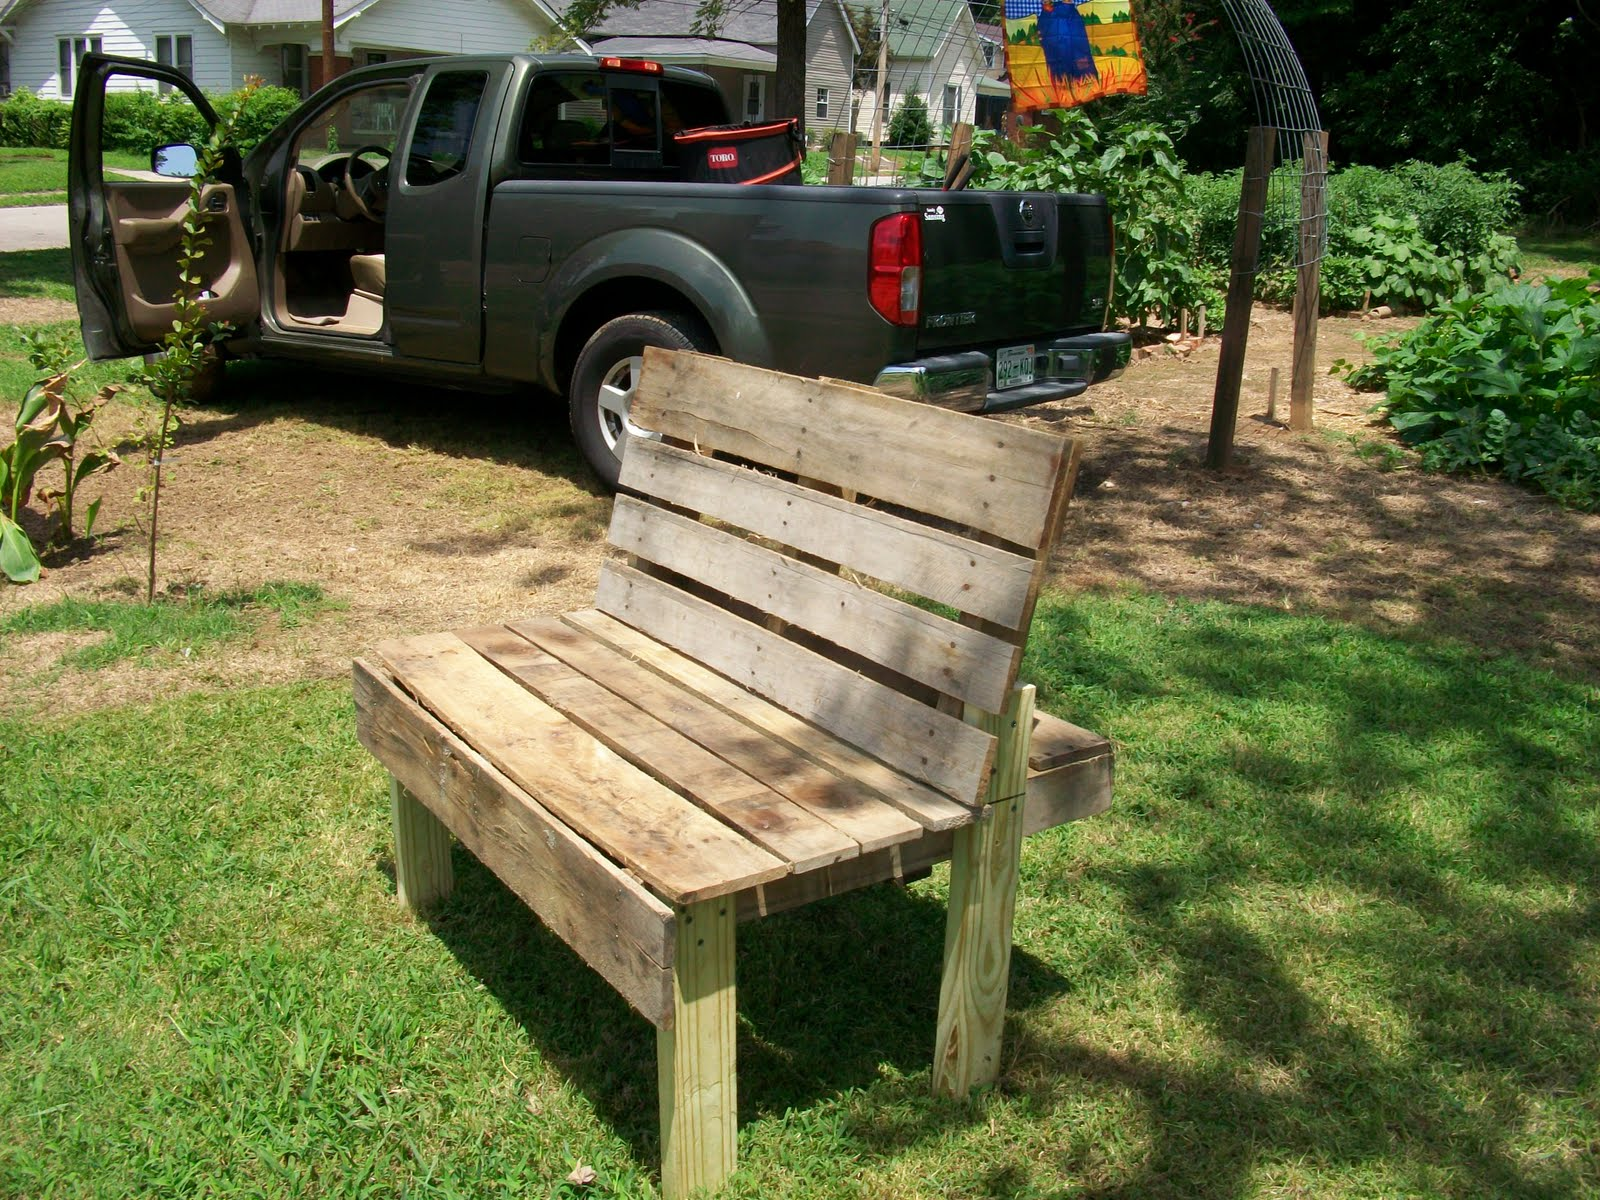 Garden Daddy: RECYCLED PALLET BECOMES GARDEN BENCH